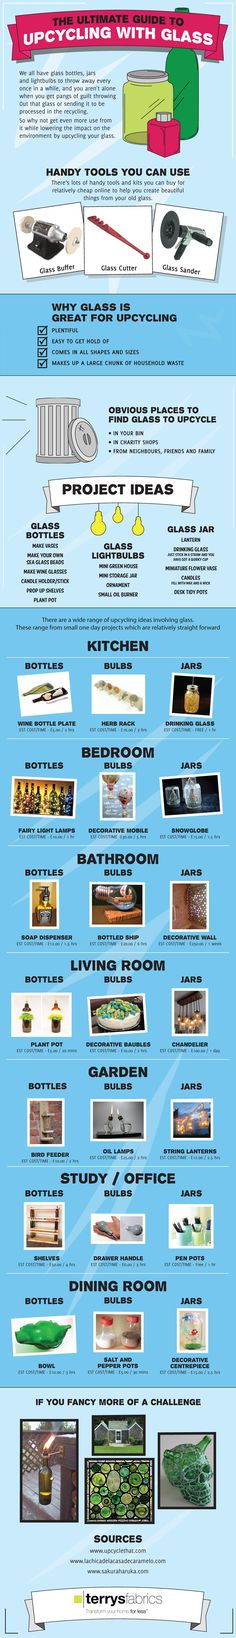 Glass: Upcycling with Glass [Infographic] via @Terrys Fabrics